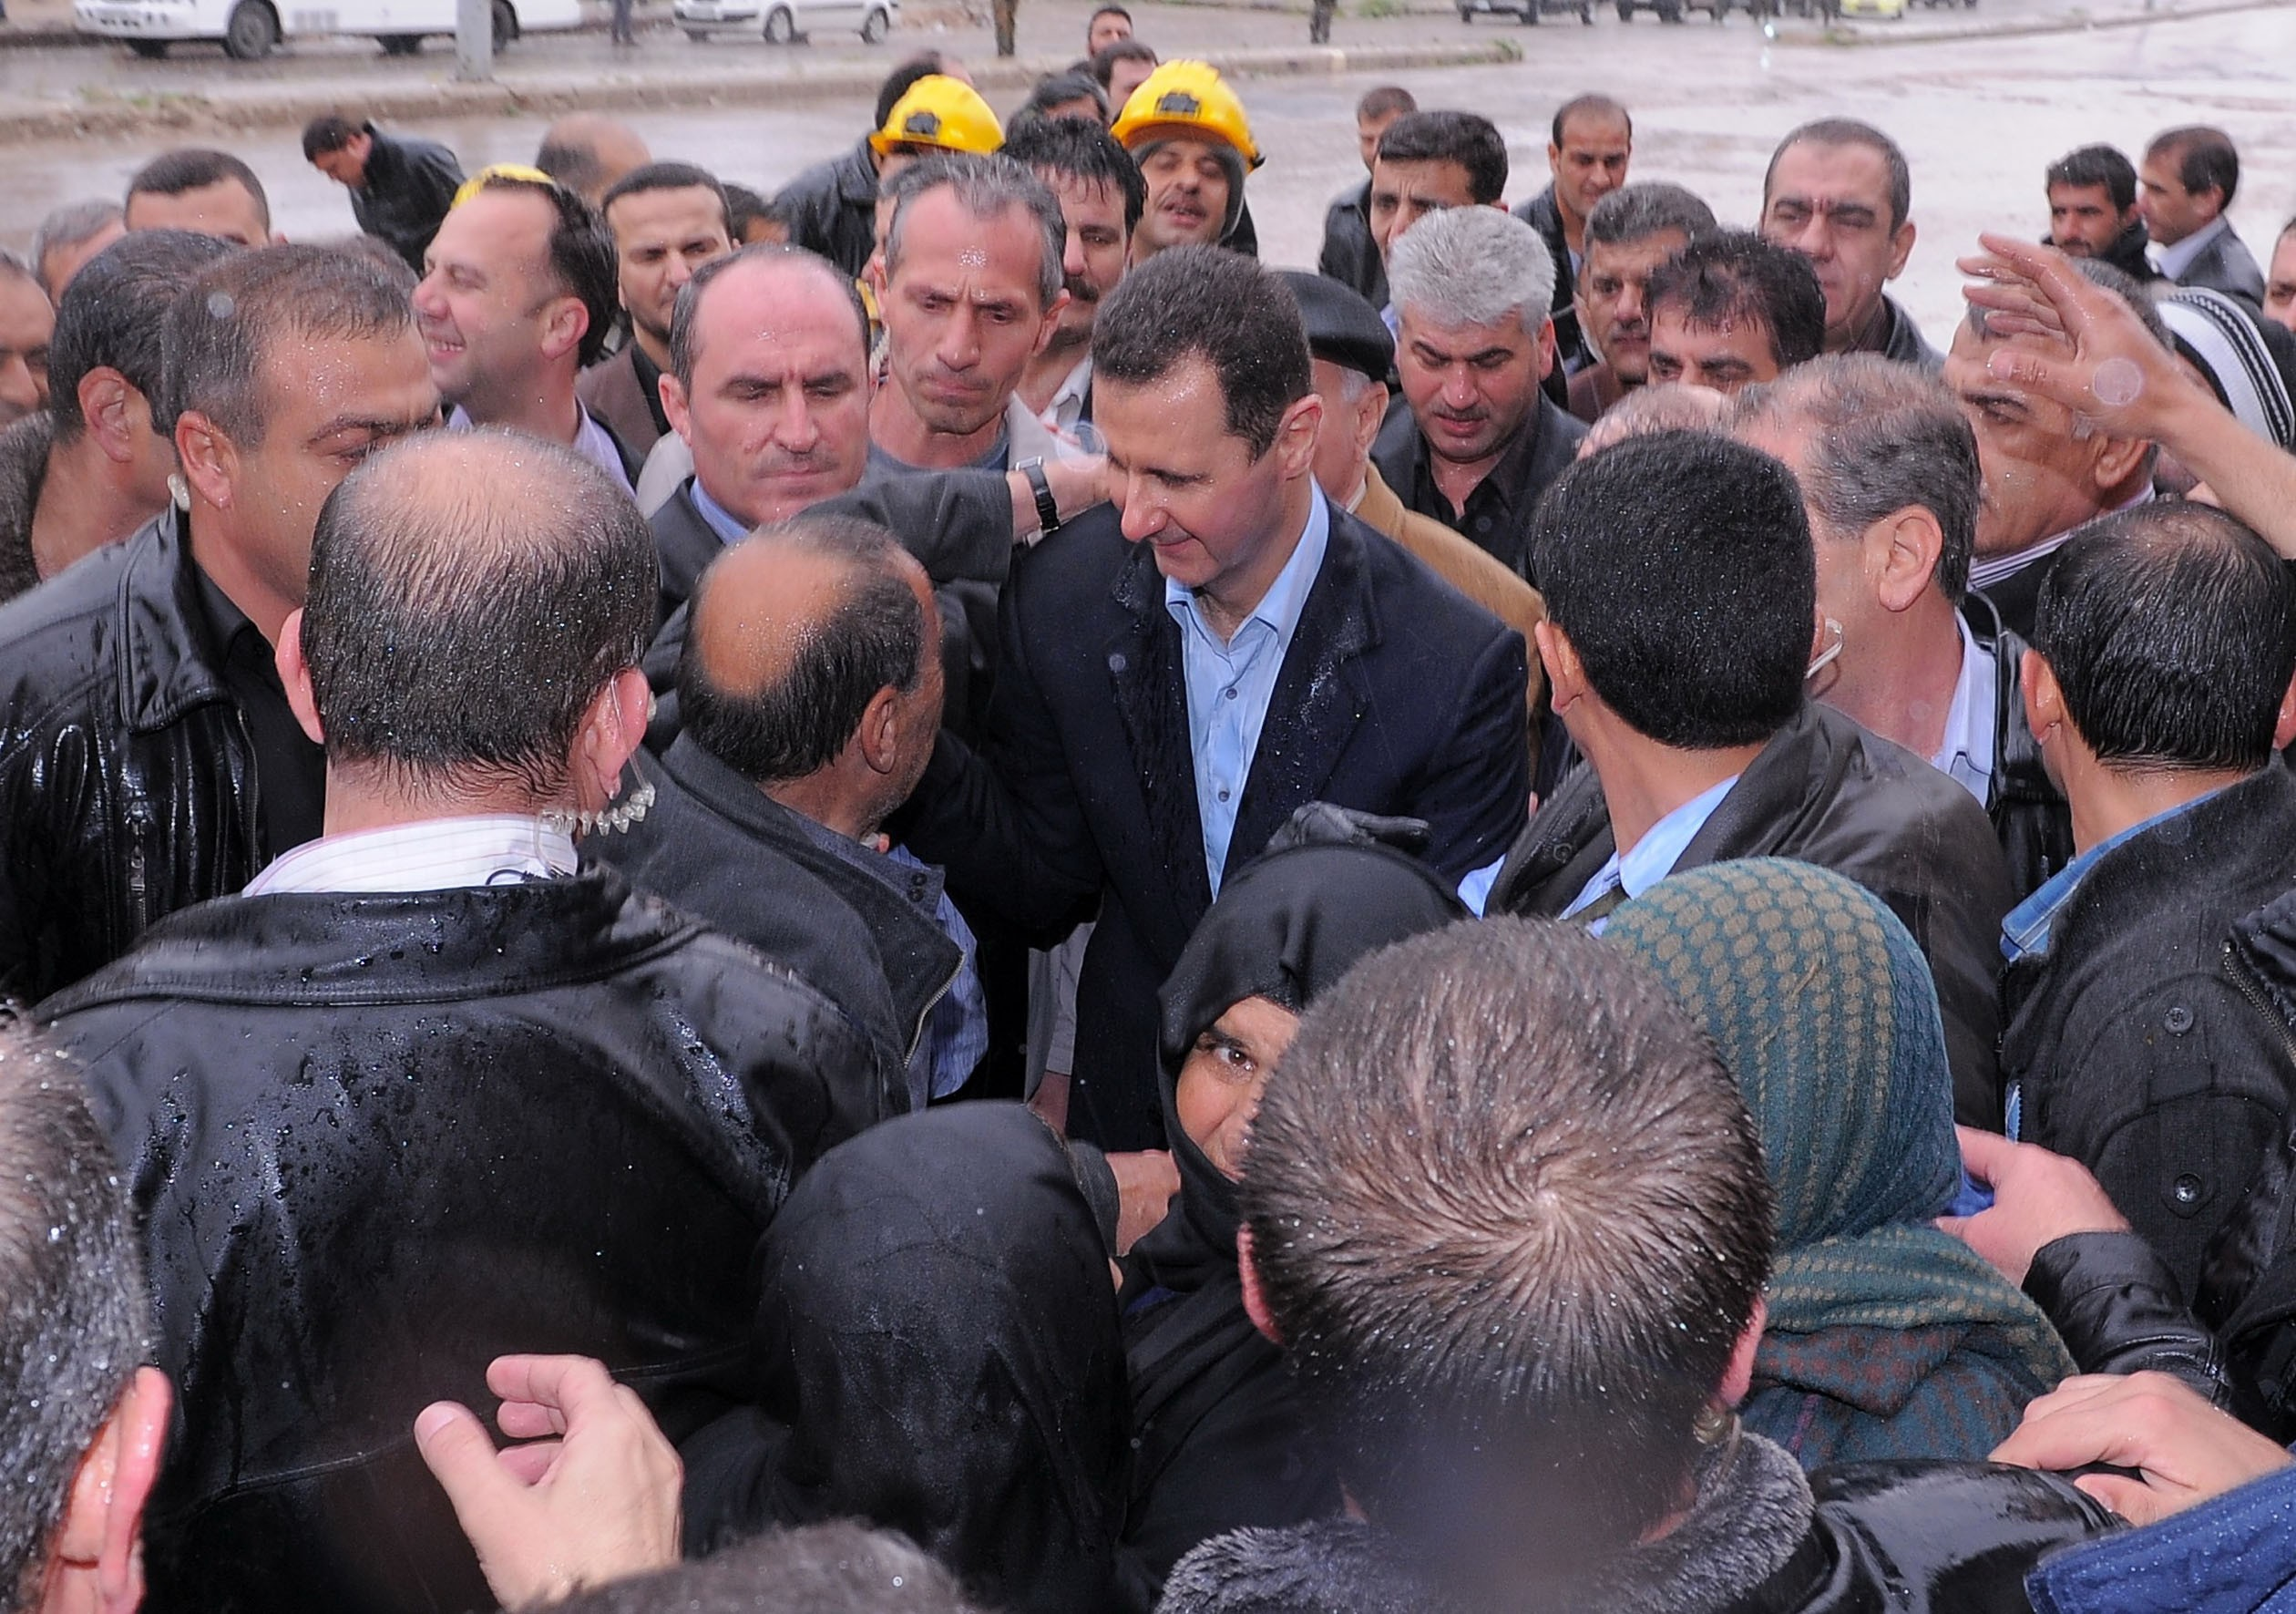 Foto LaPresse Syrian President Bashar al-Assad (C) speaks to his supporters during his visit to the Baba Amr neighbourhood in the restive city of Homs / 270312